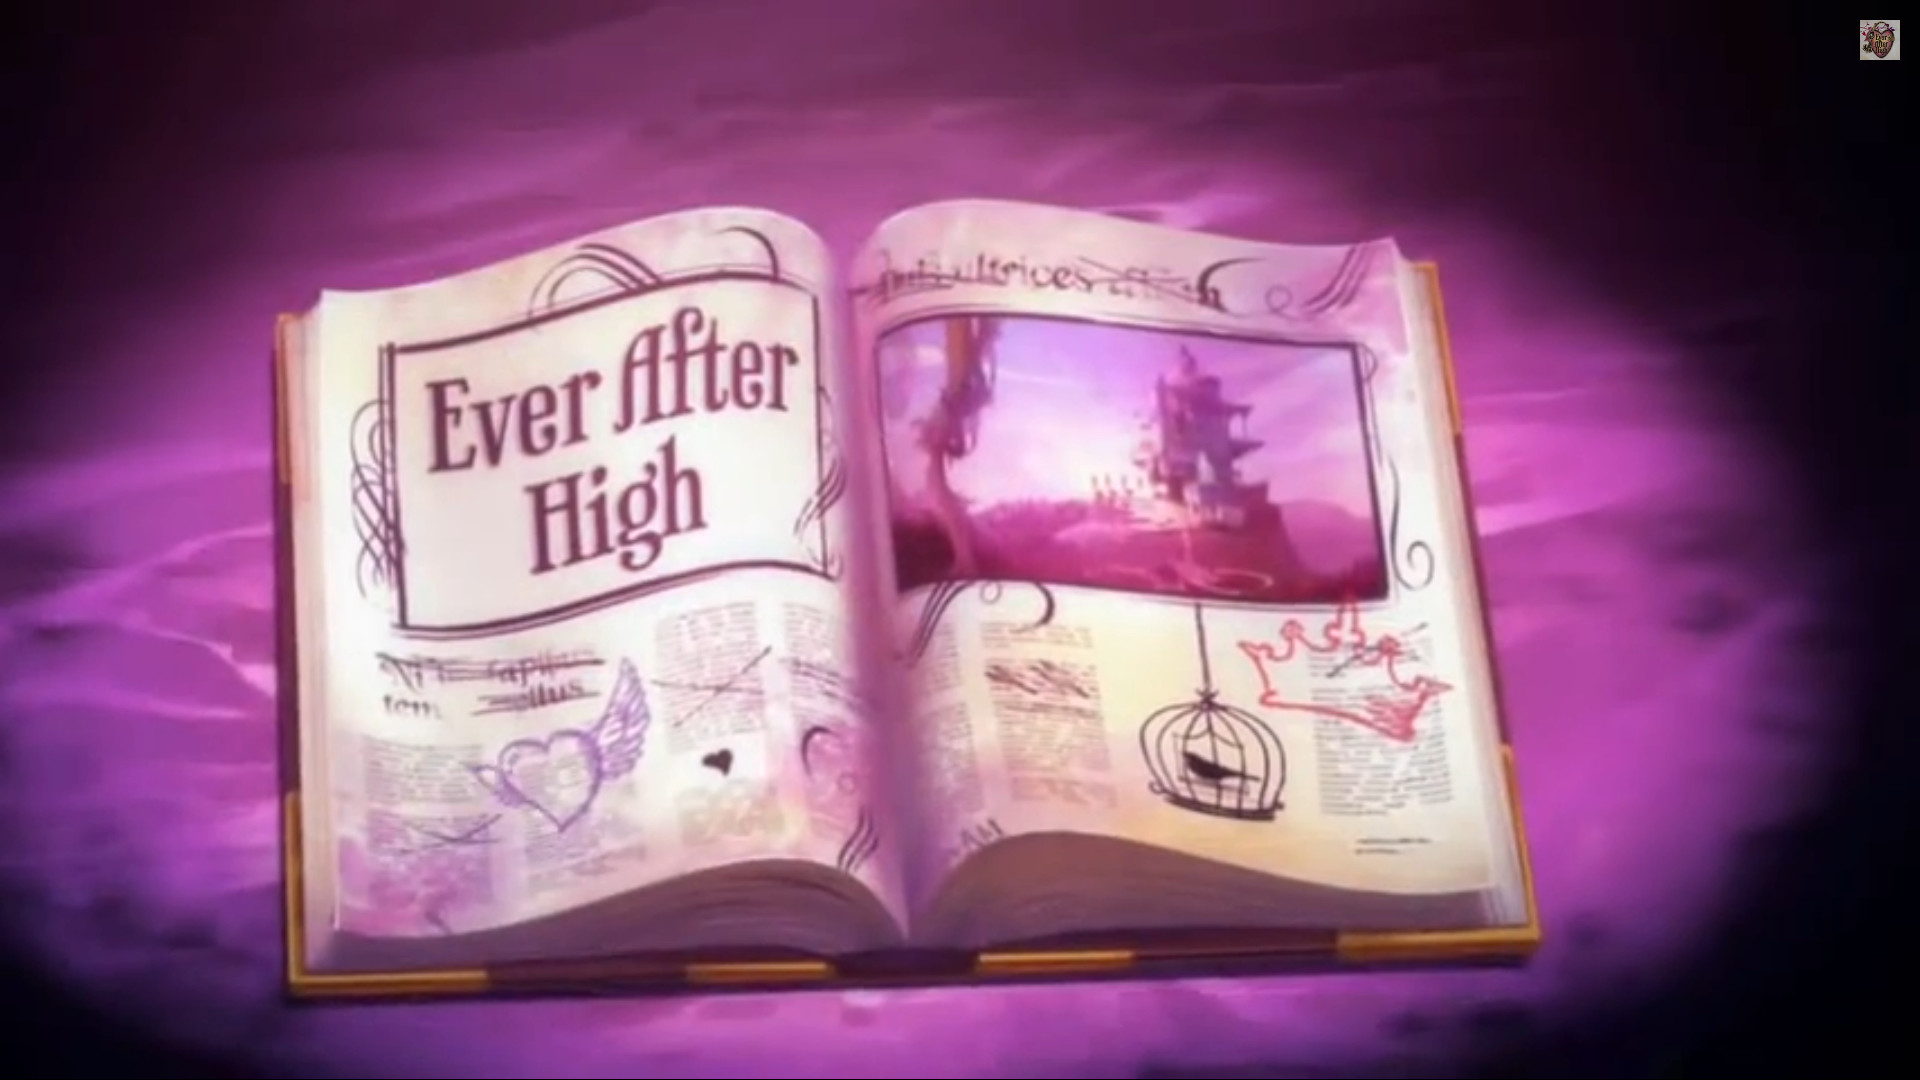 Wallpaper Ever After High 73 Images